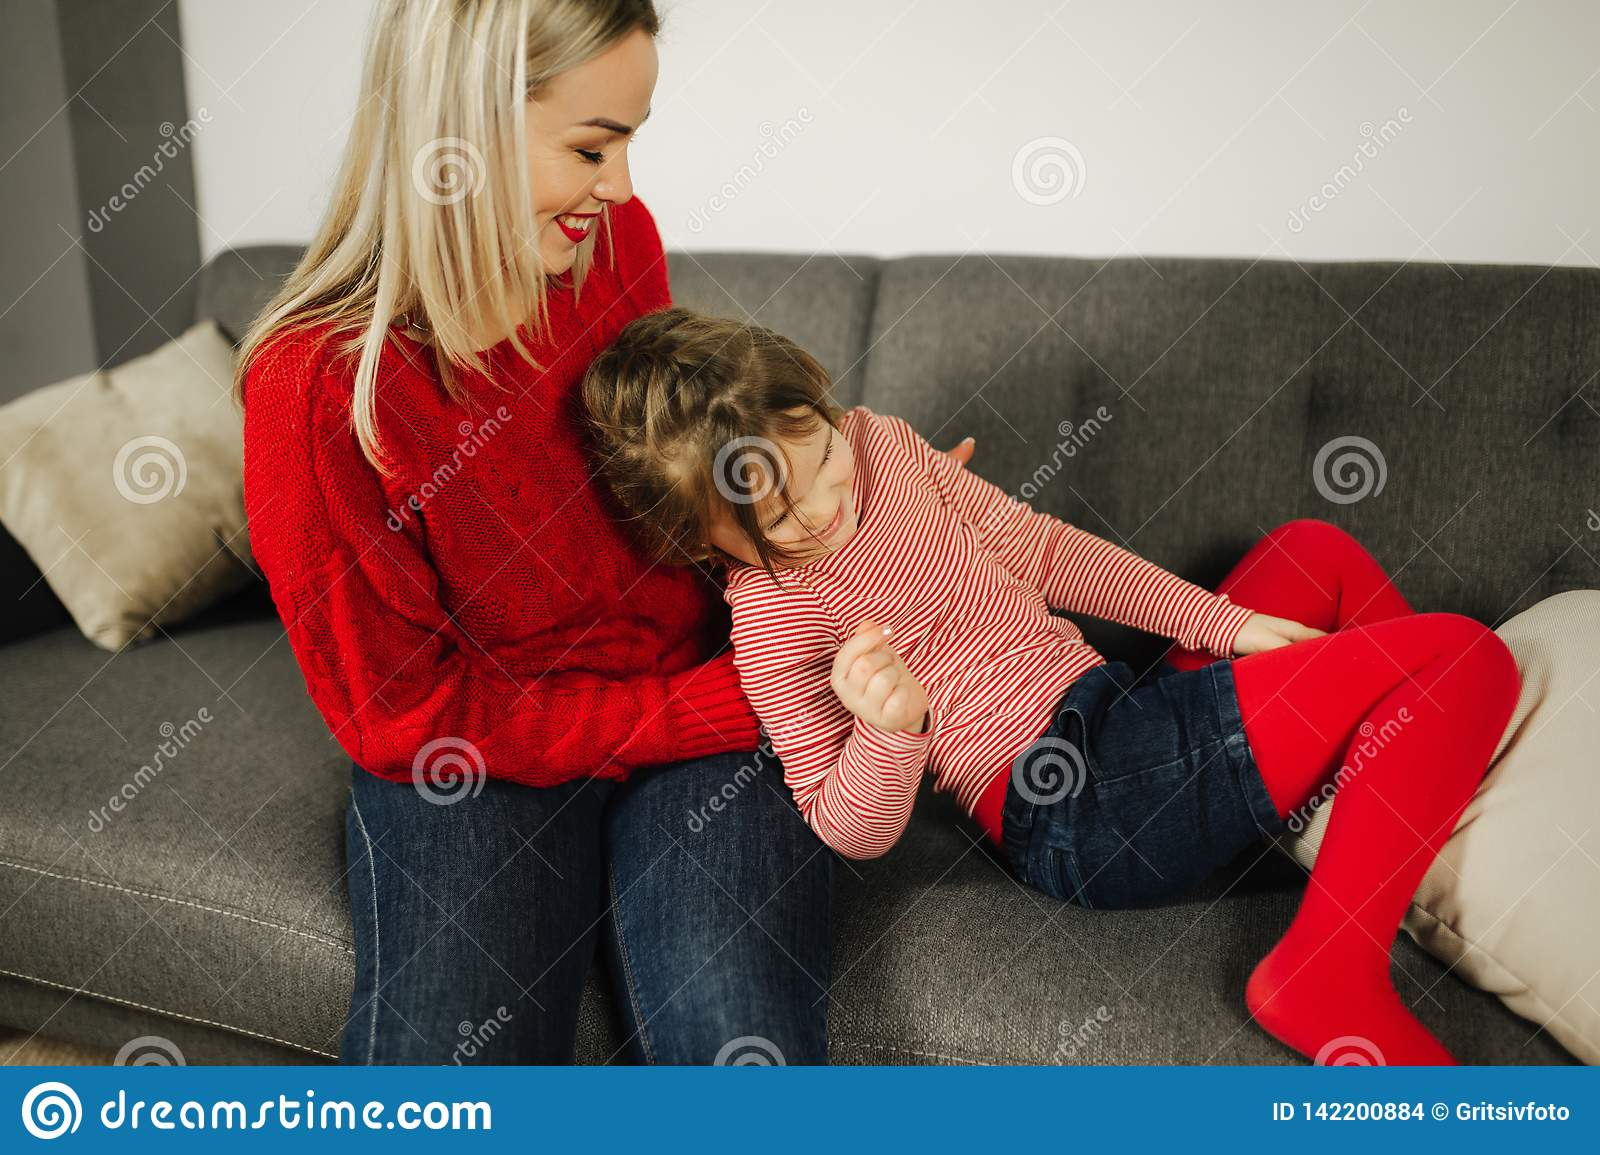 Mom and daughter play at home. Little girl tickle her mother. Happy family spend time together. Blond hair woman